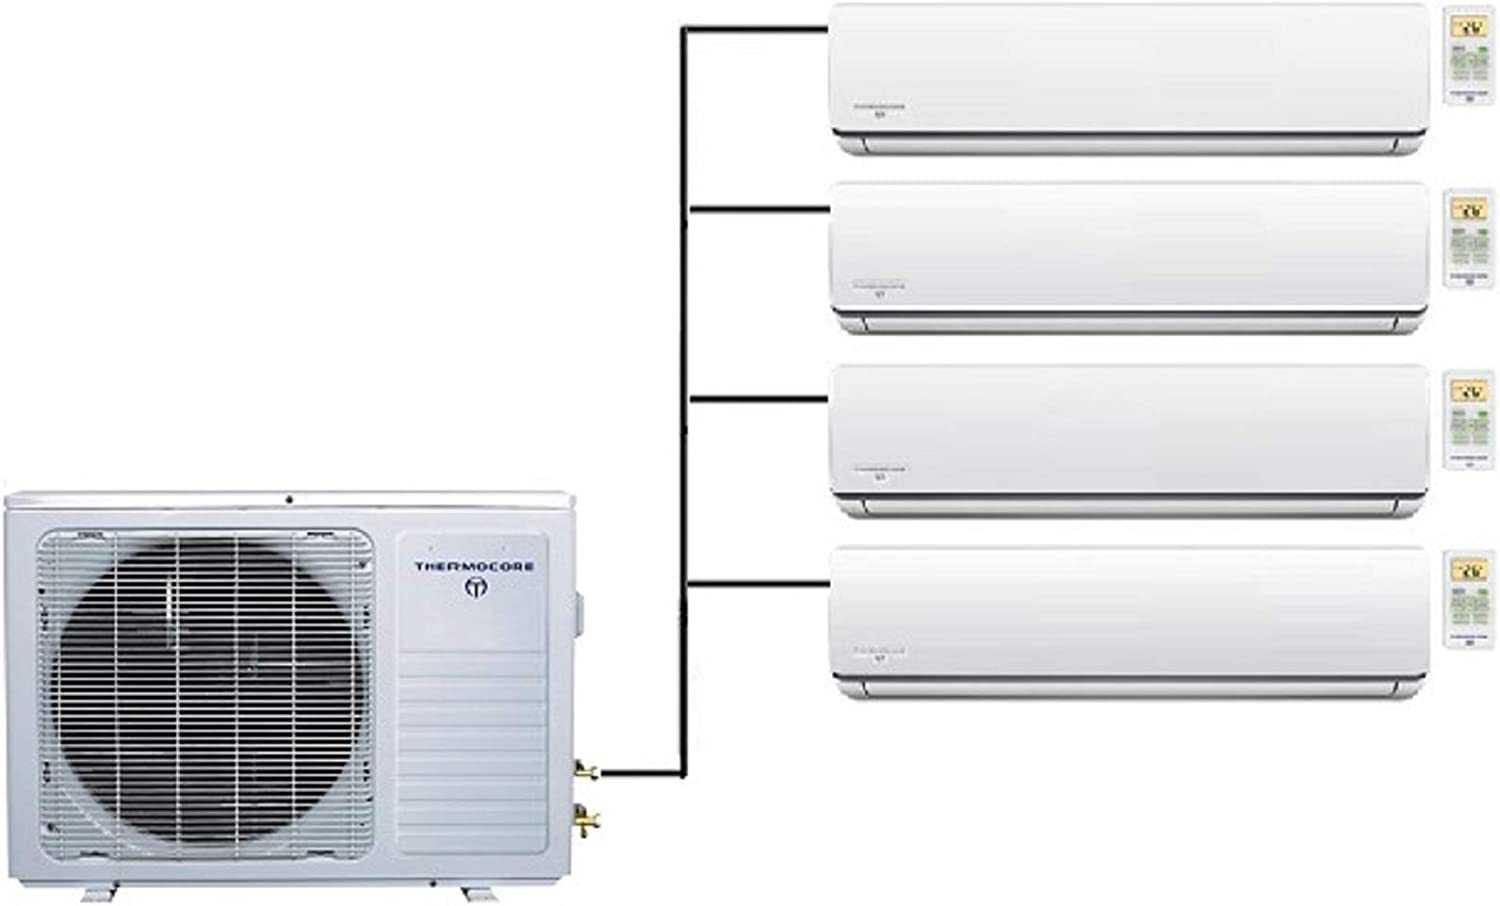 Thermocore T323D-H248 9x3+18 9000 x 3 + 18000, Large, White